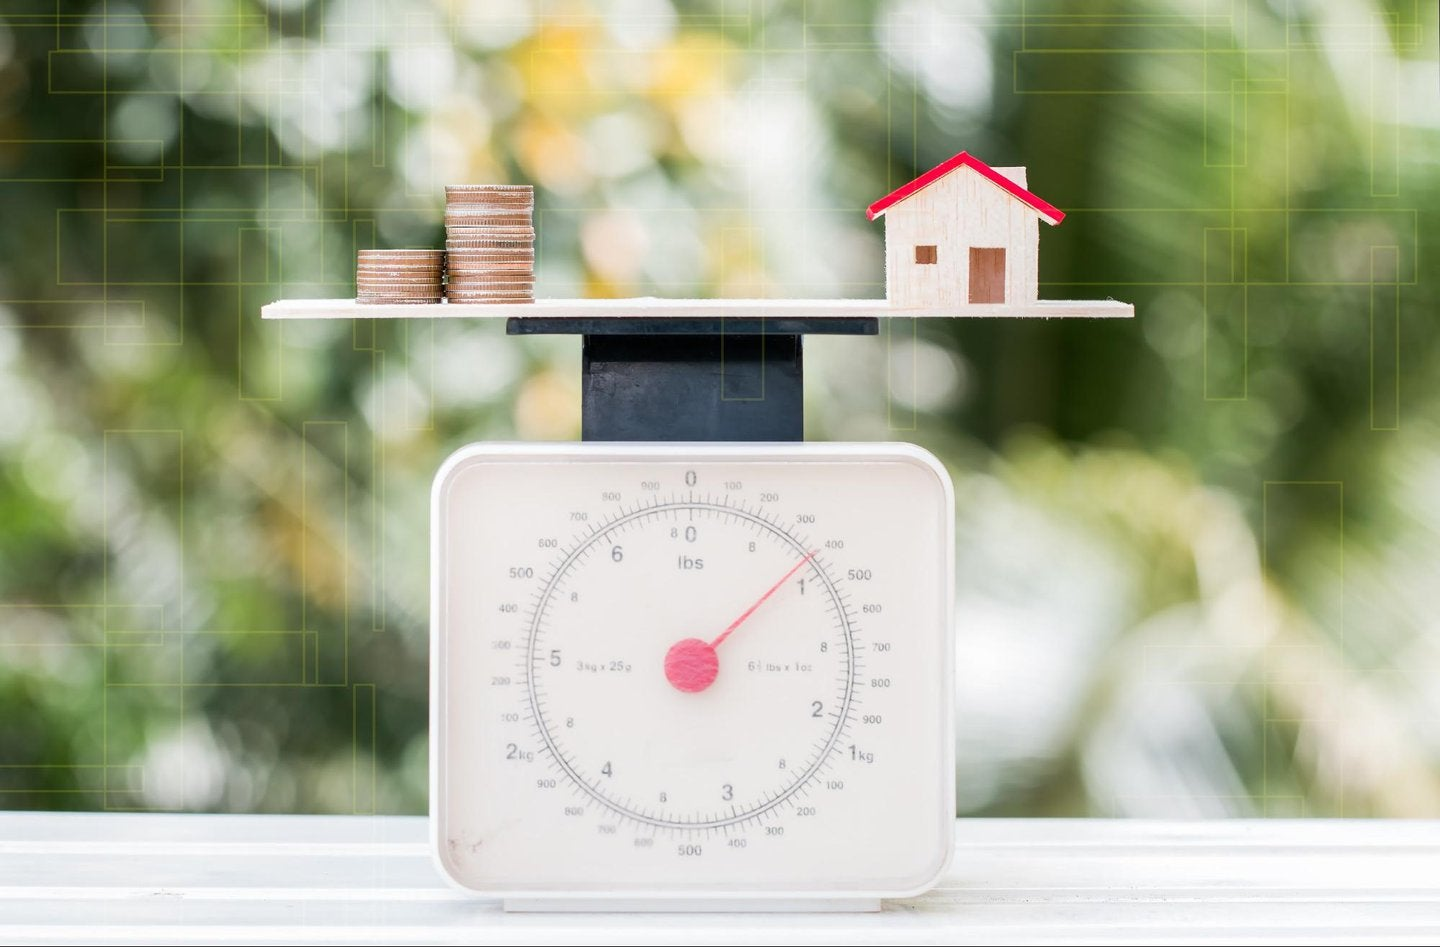 Coins and a house model on a scale